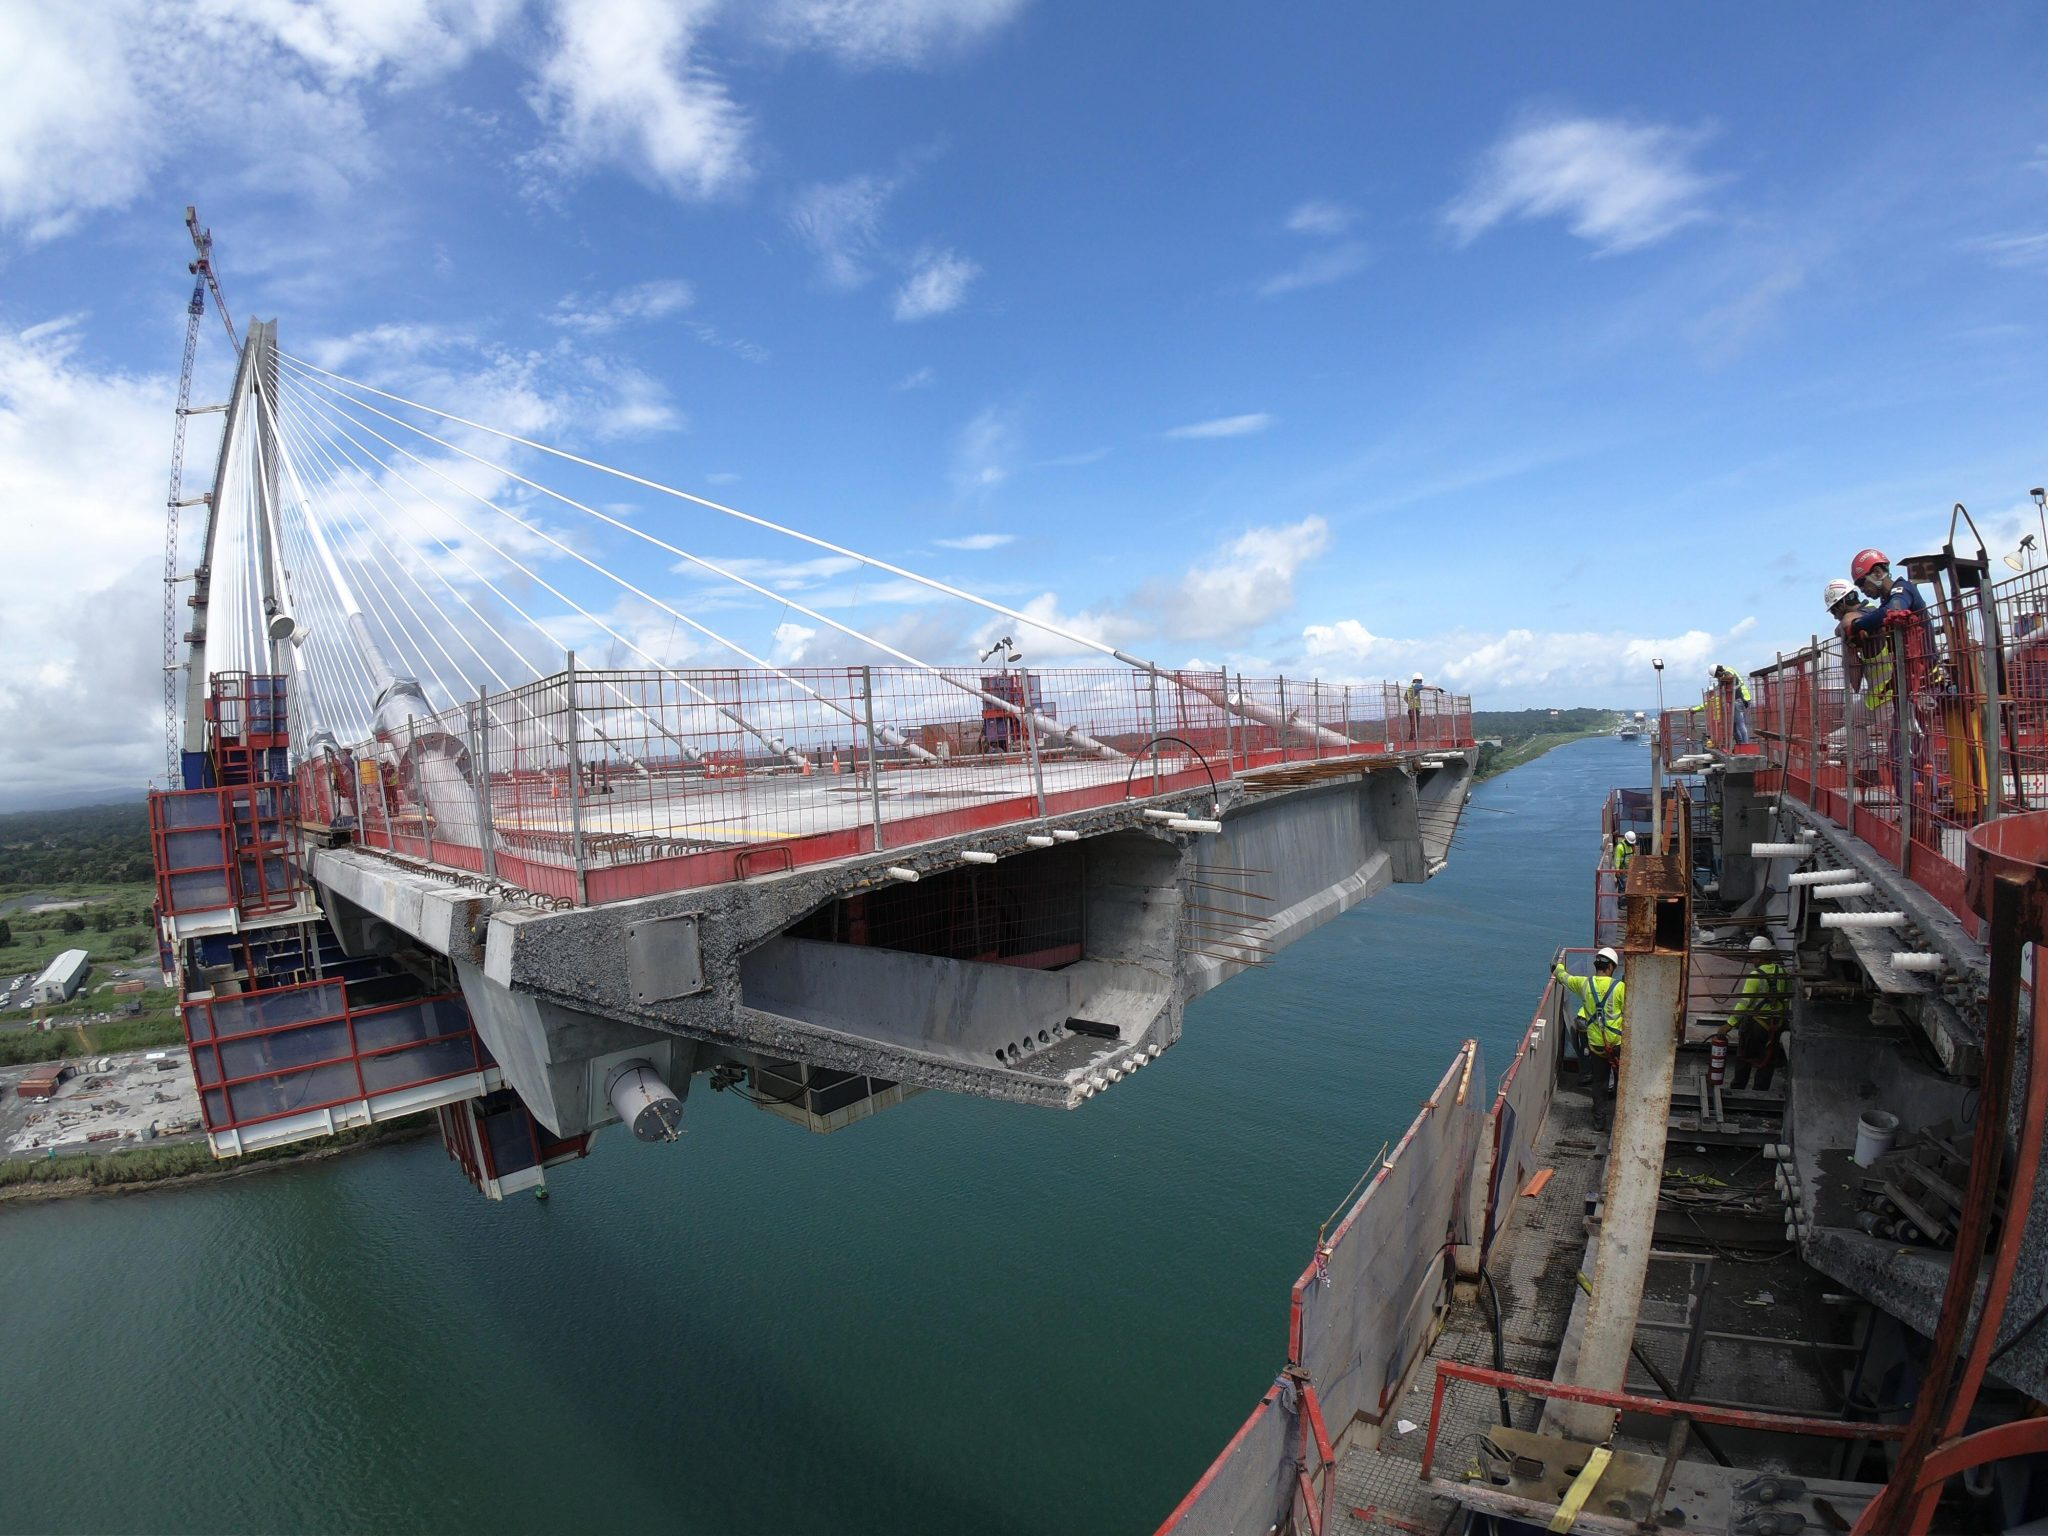 Special Formwork travellers Atlantic Bridge Panmá by RUBRICA BRIDGES